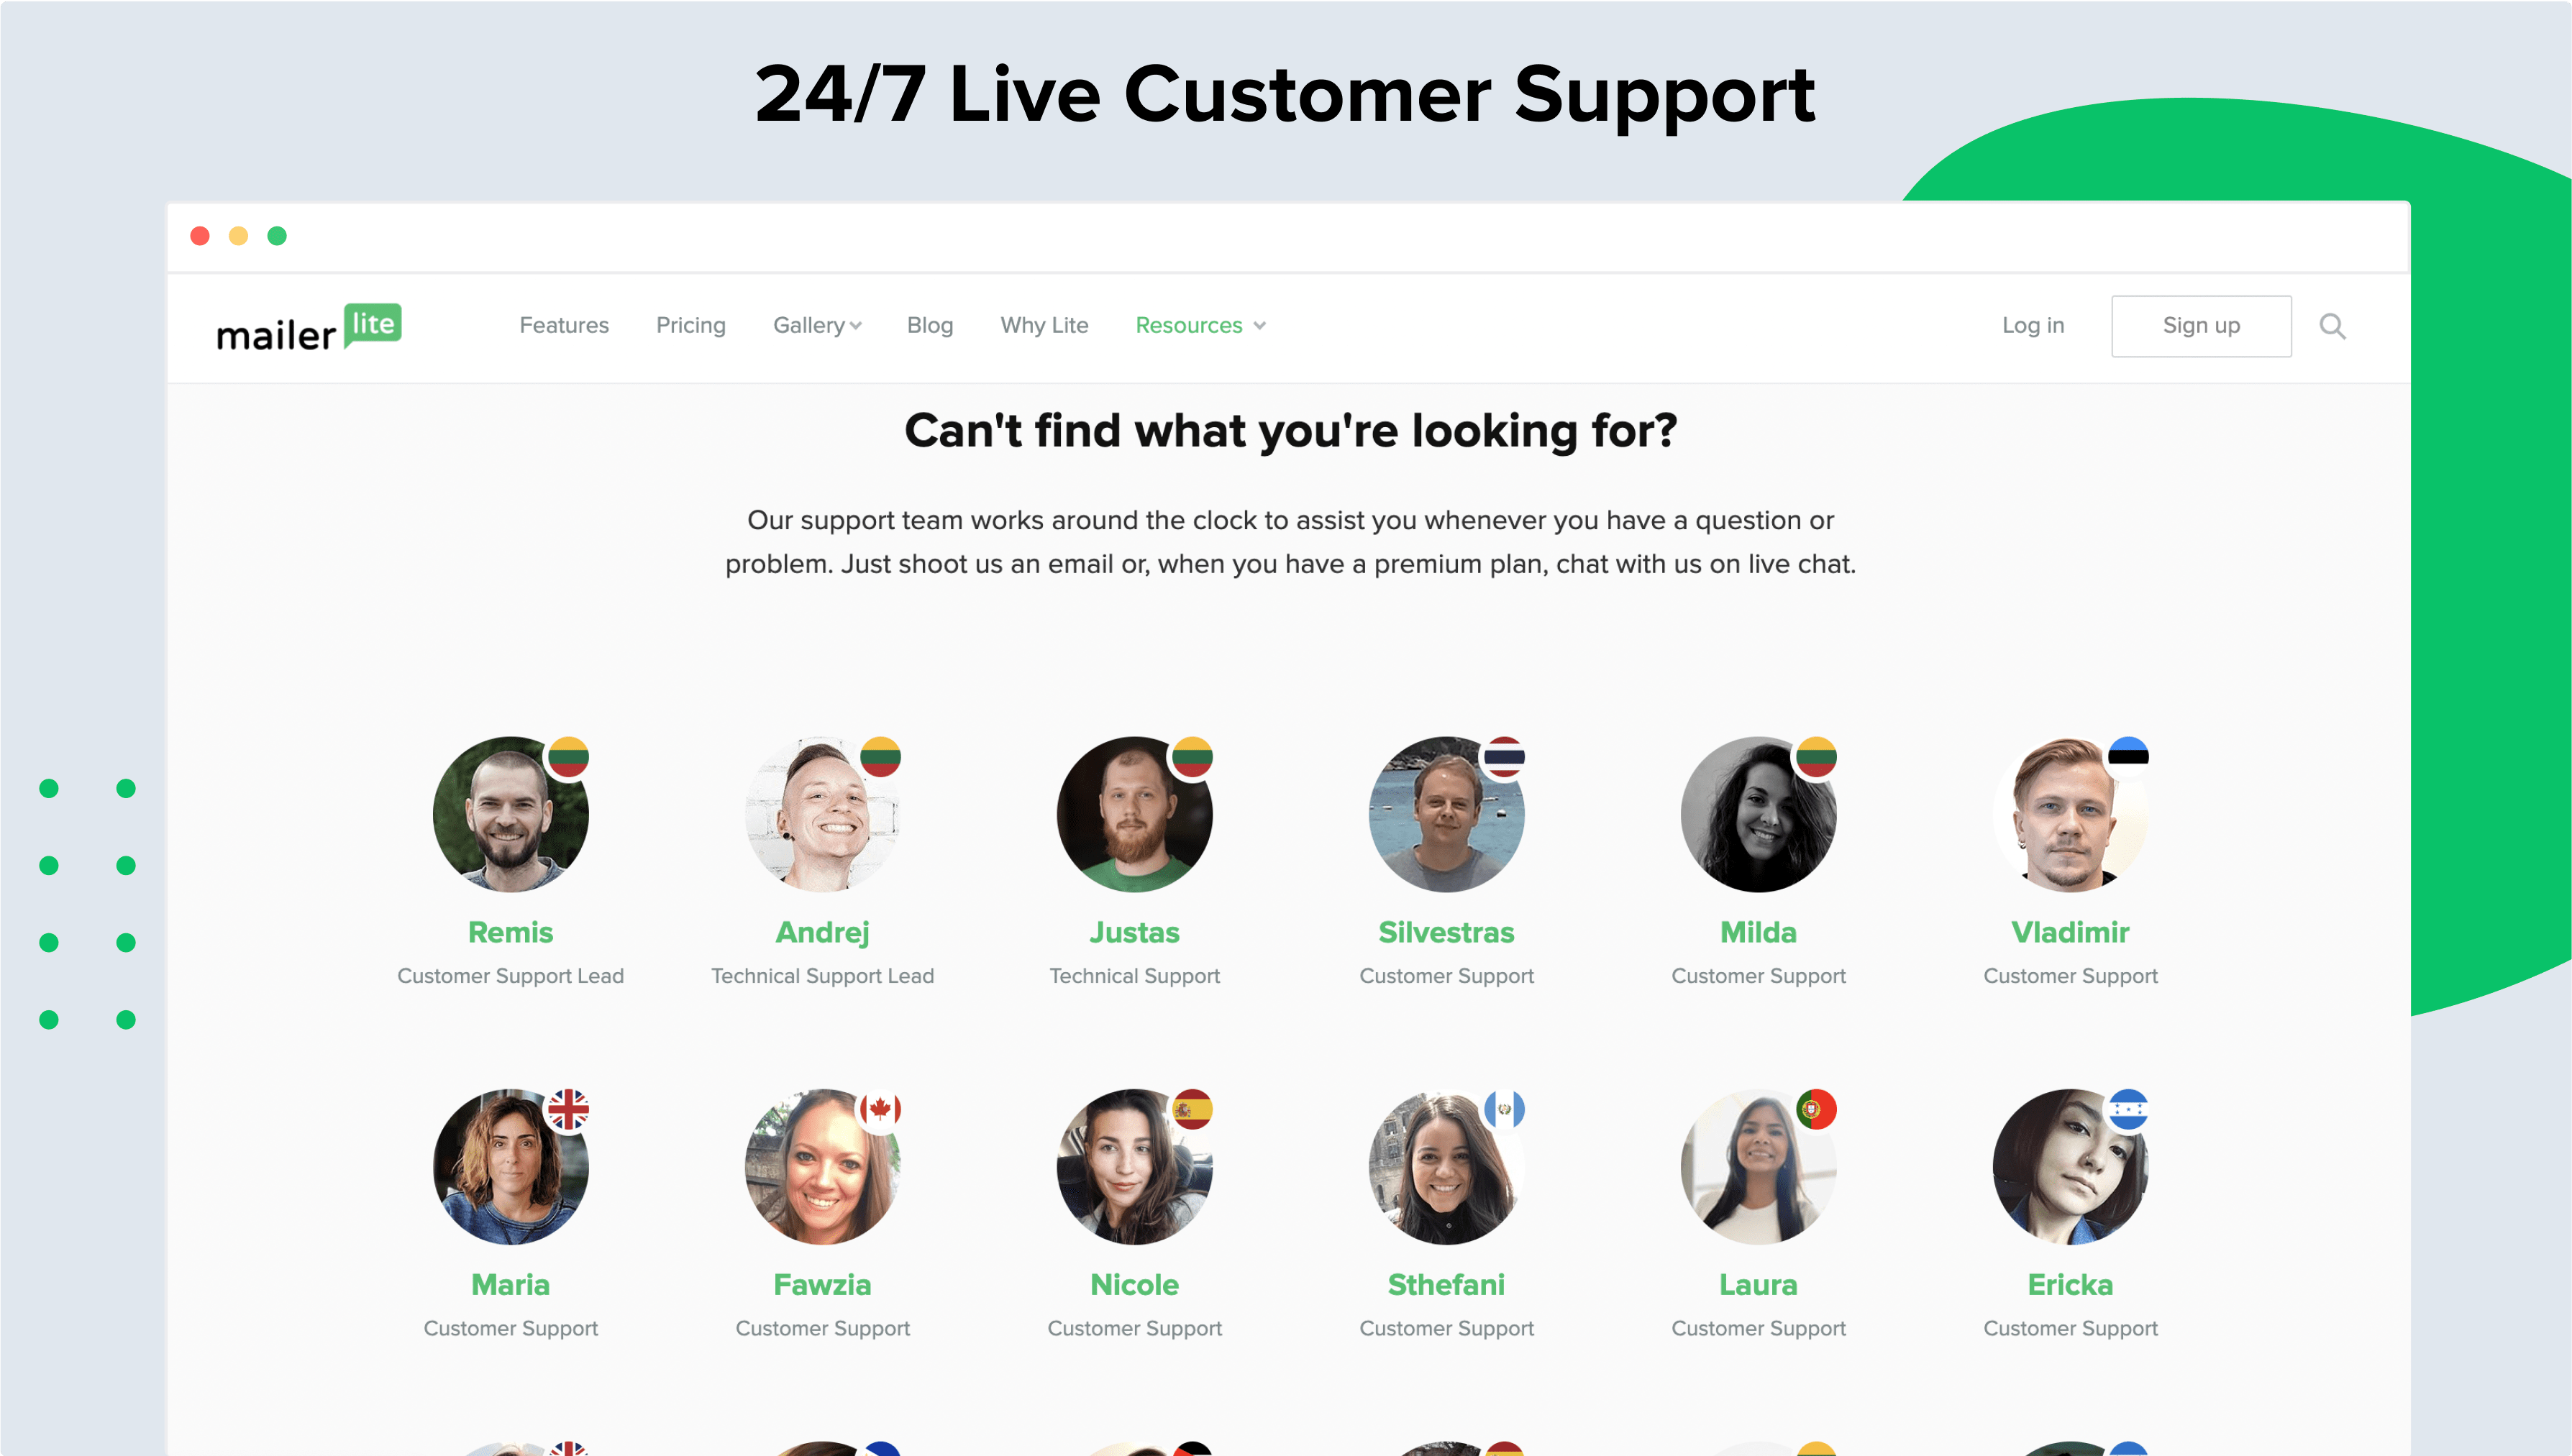 24/7 Live Customer Support